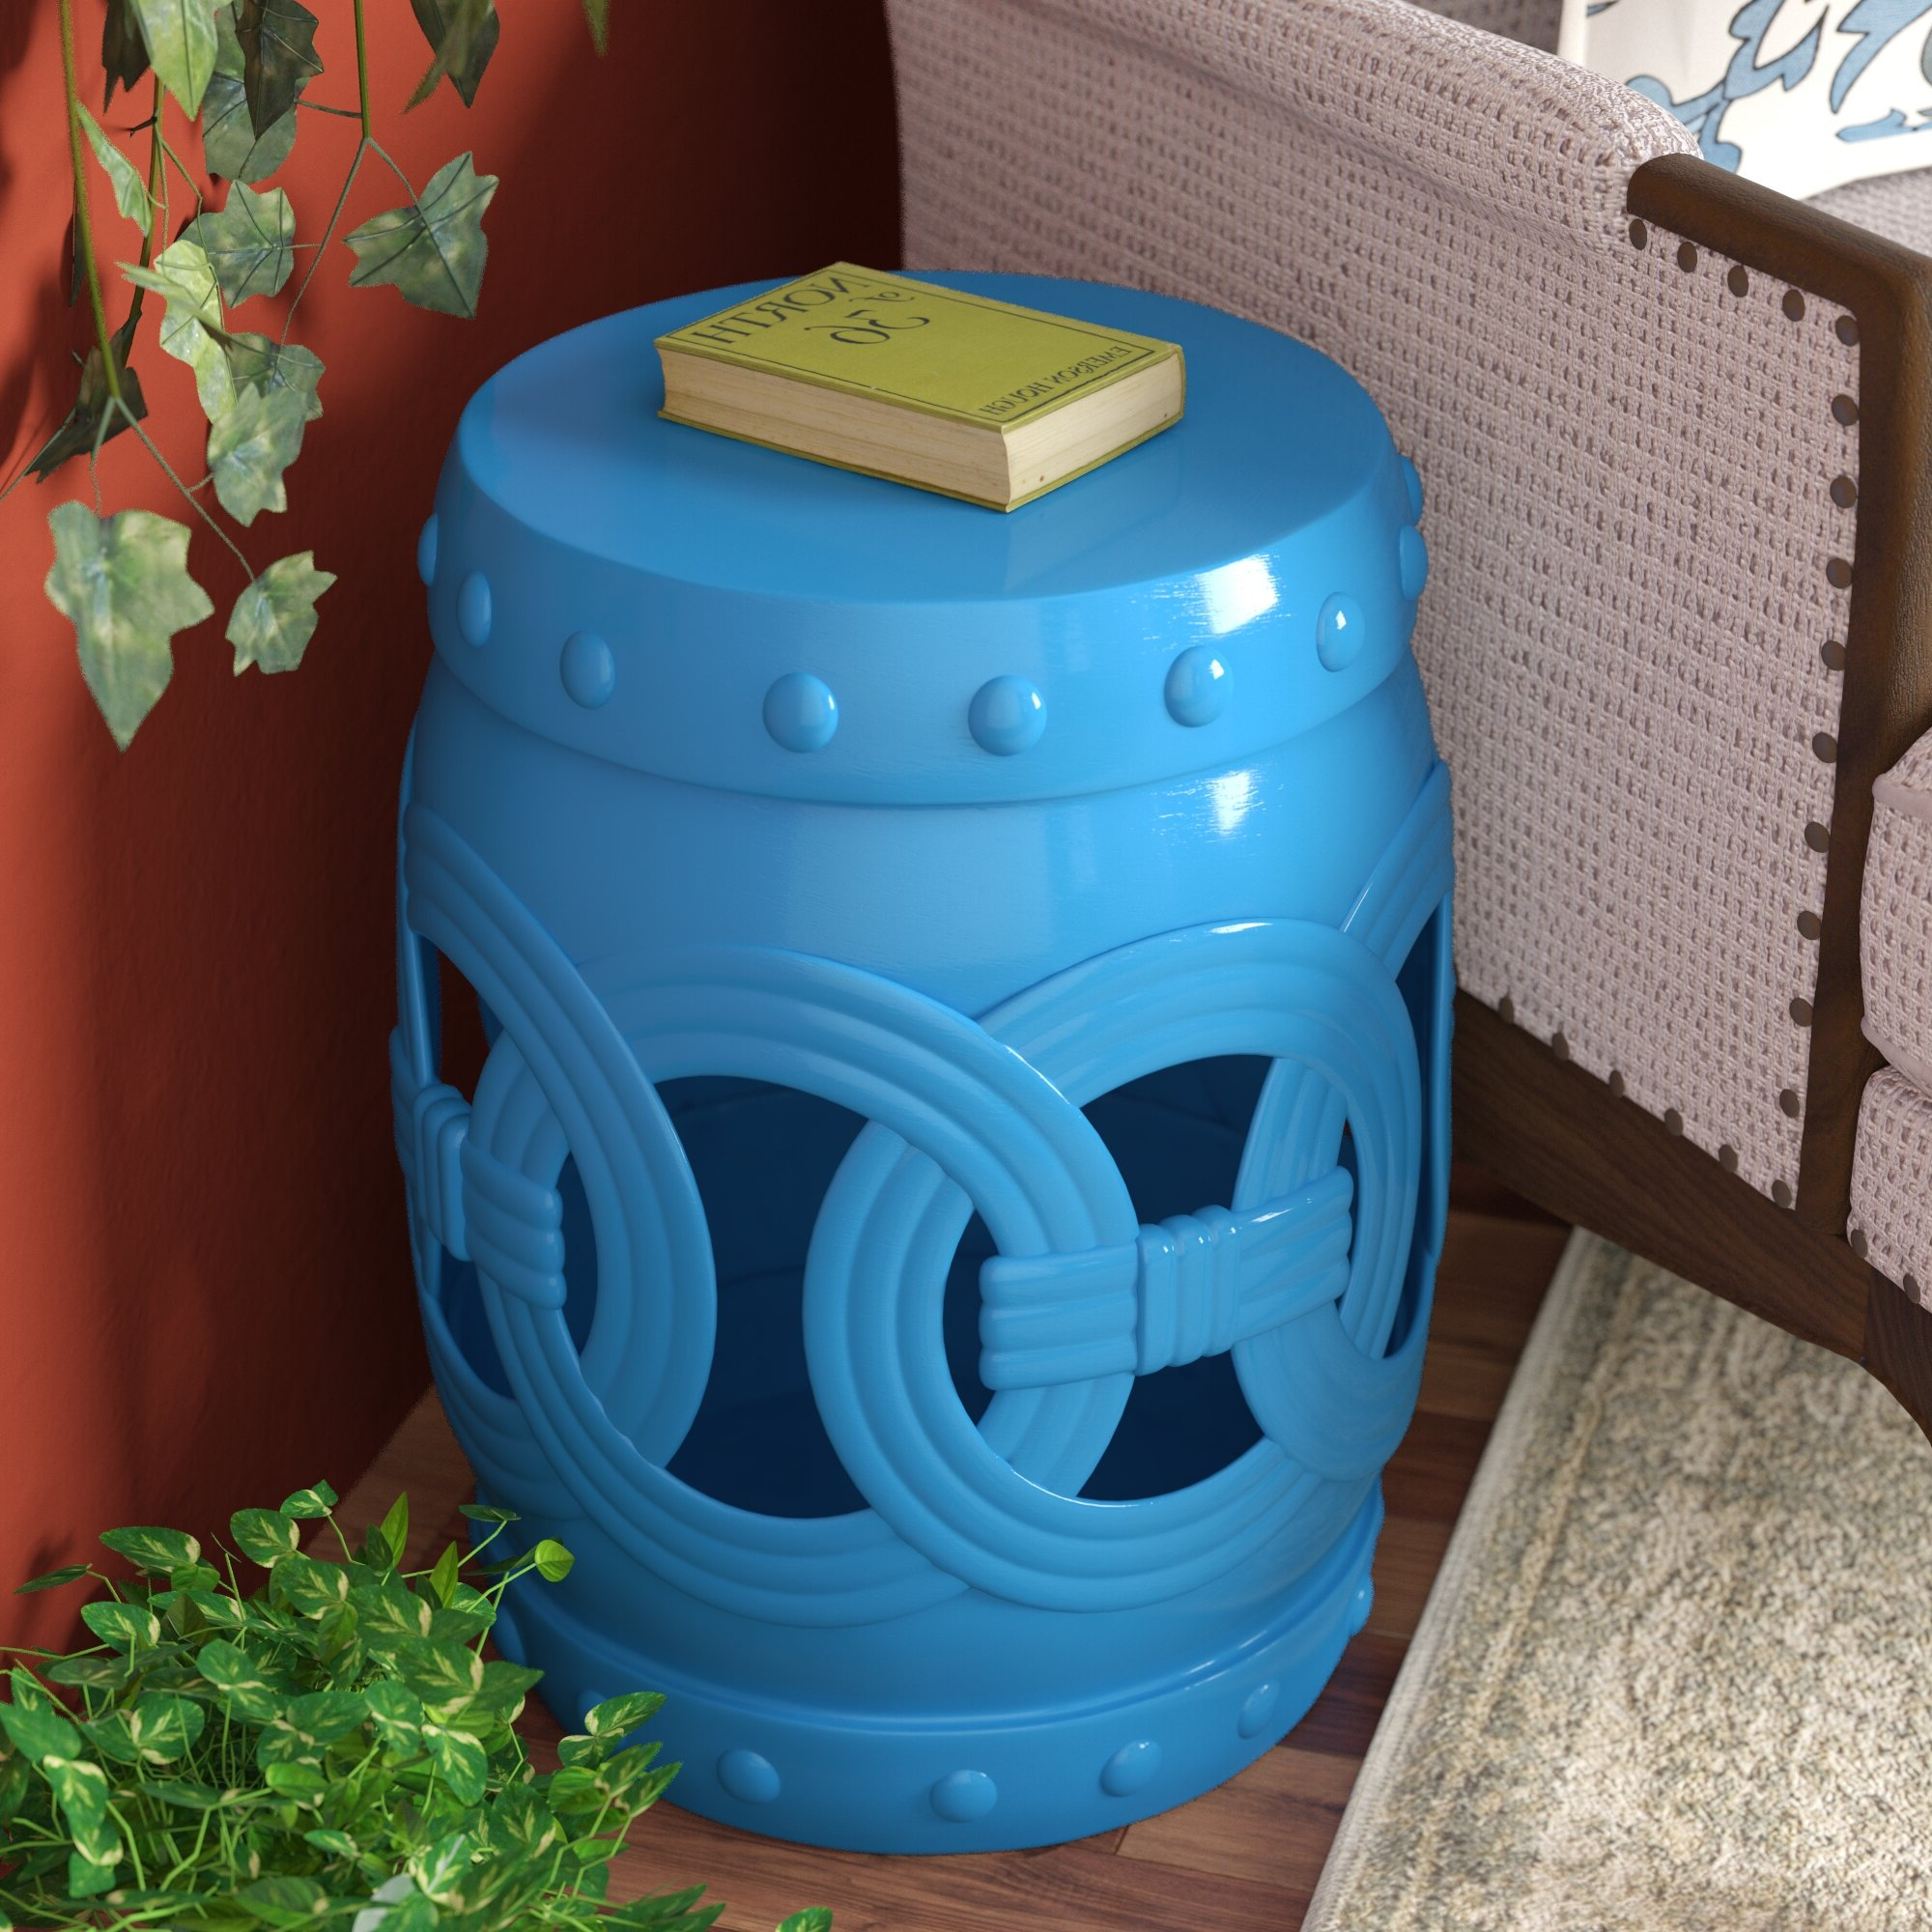 Widely Used Kilpatrick Feng Shui Ceramic Garden Stool Regarding Holbrook Ceramic Garden Stools (View 18 of 30)